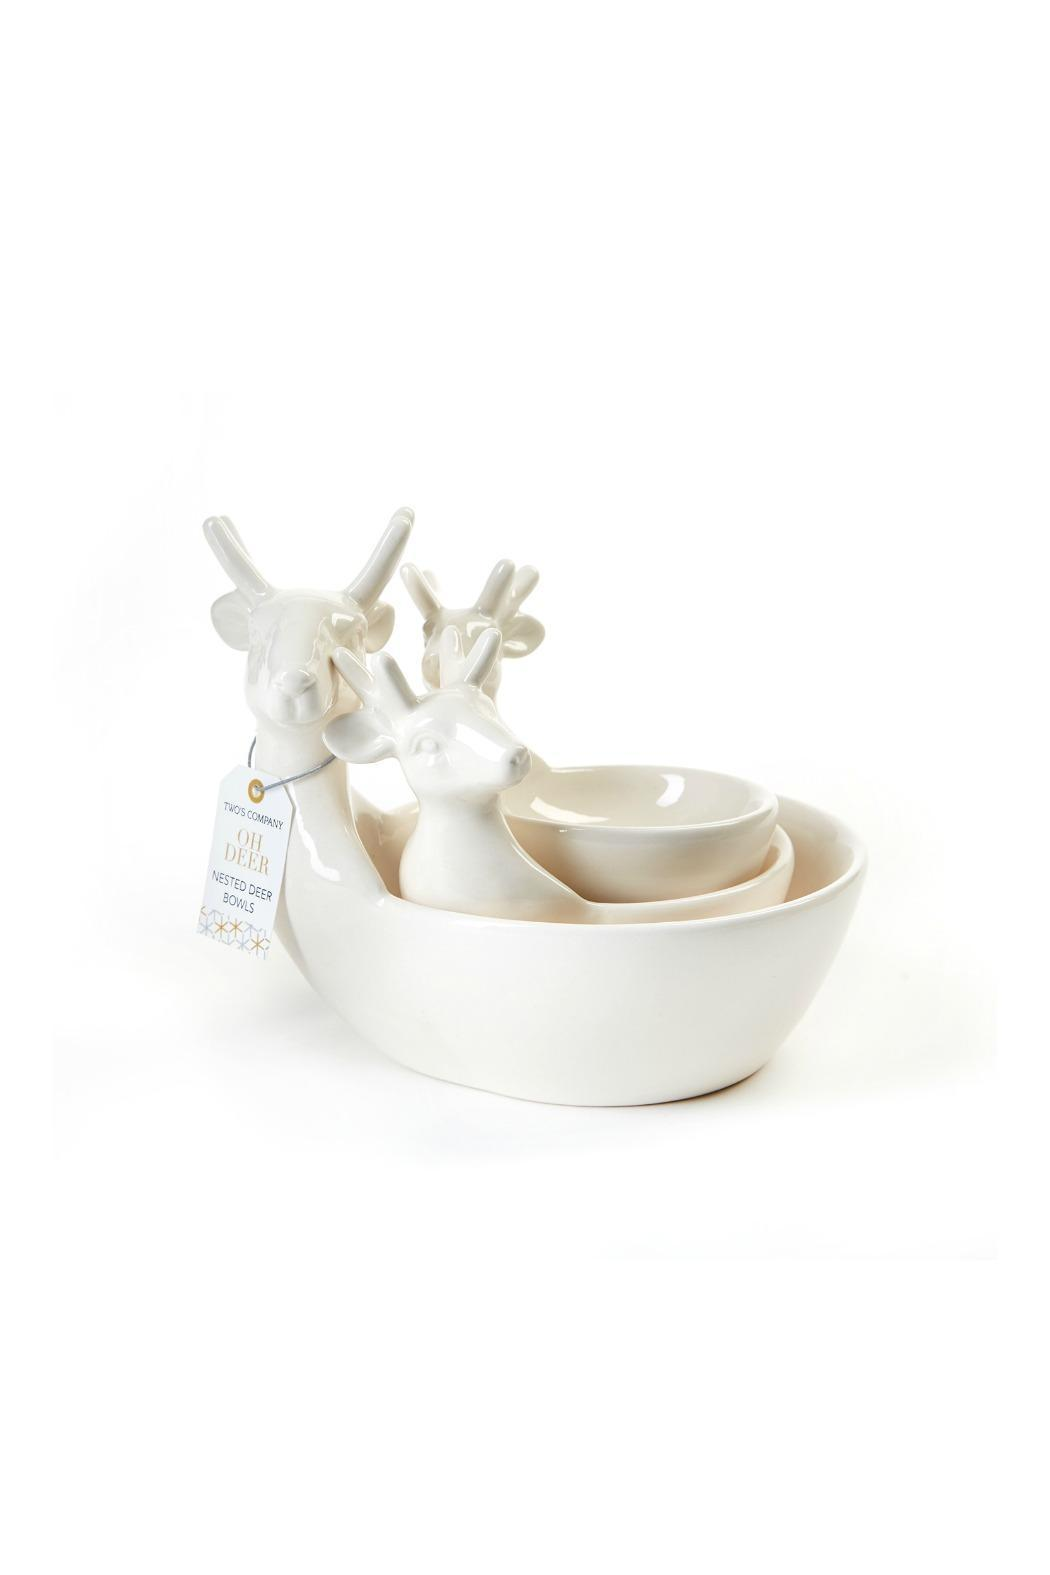 White Porcelain Deer Head Two 39s Deer Head Bowls From New York City By Recreateu